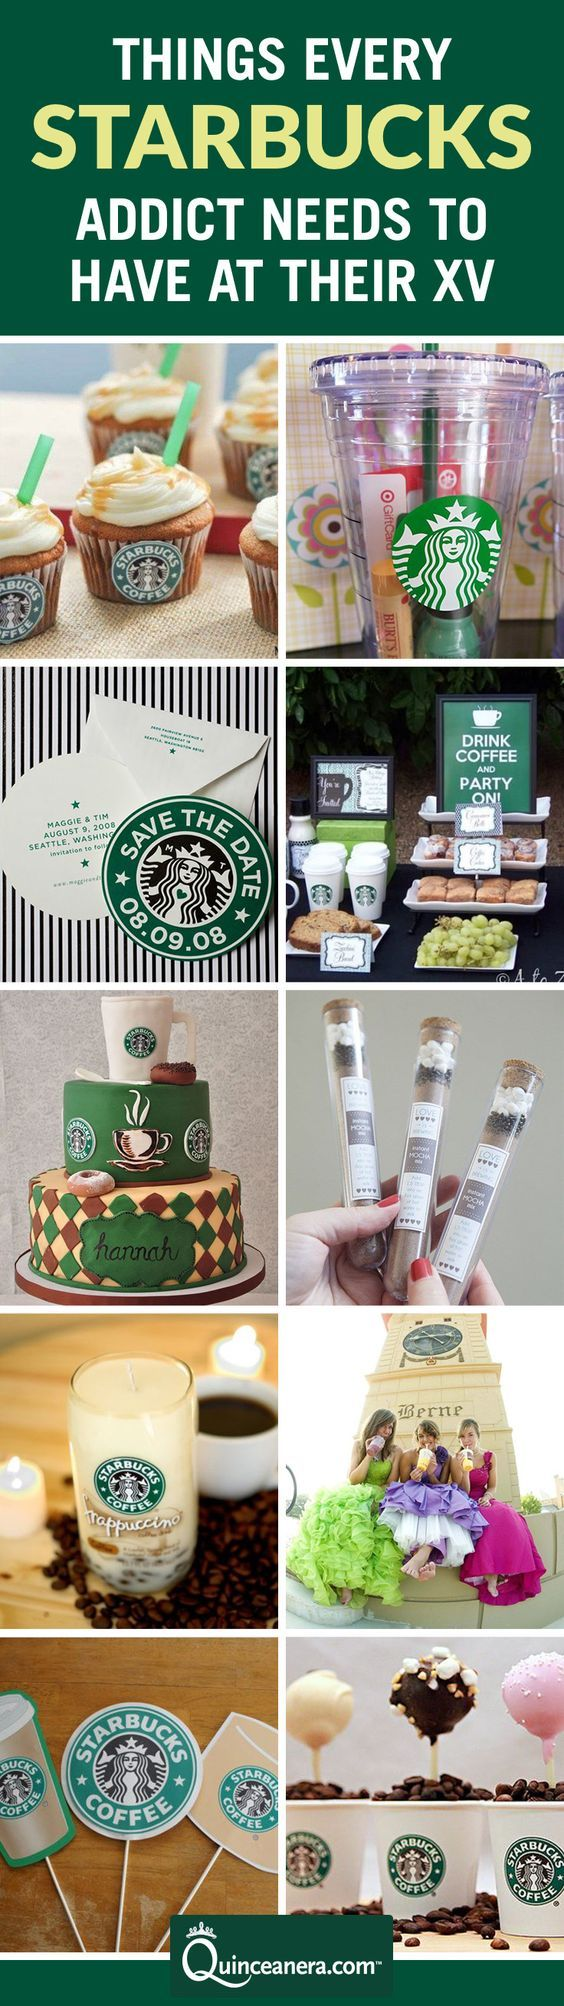 10 Things Every Starbucks Addict Needs to Have at their XV